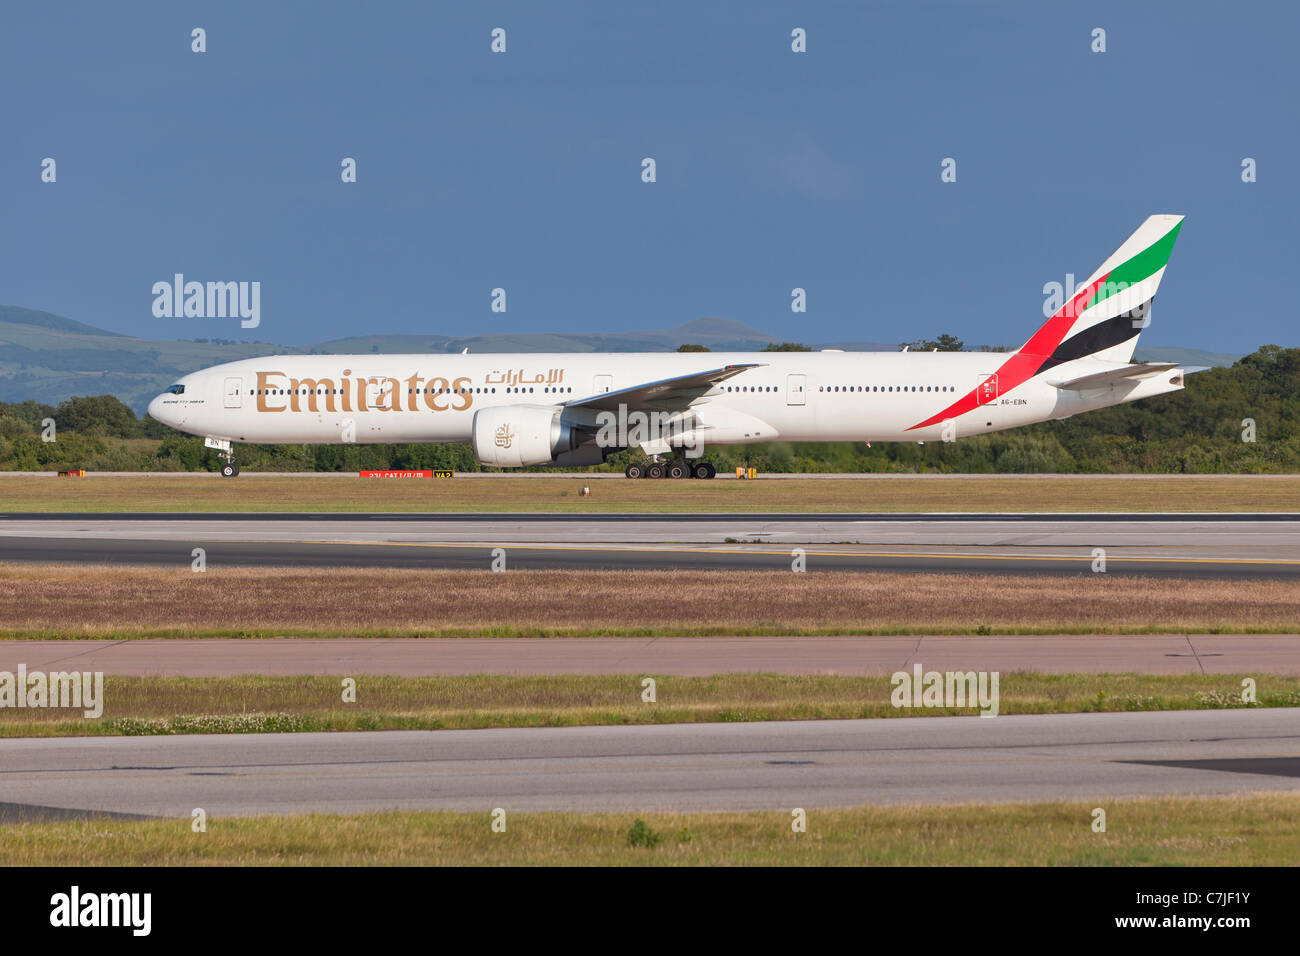 Emirates Airlines, l'avion Angleterre Photo Stock